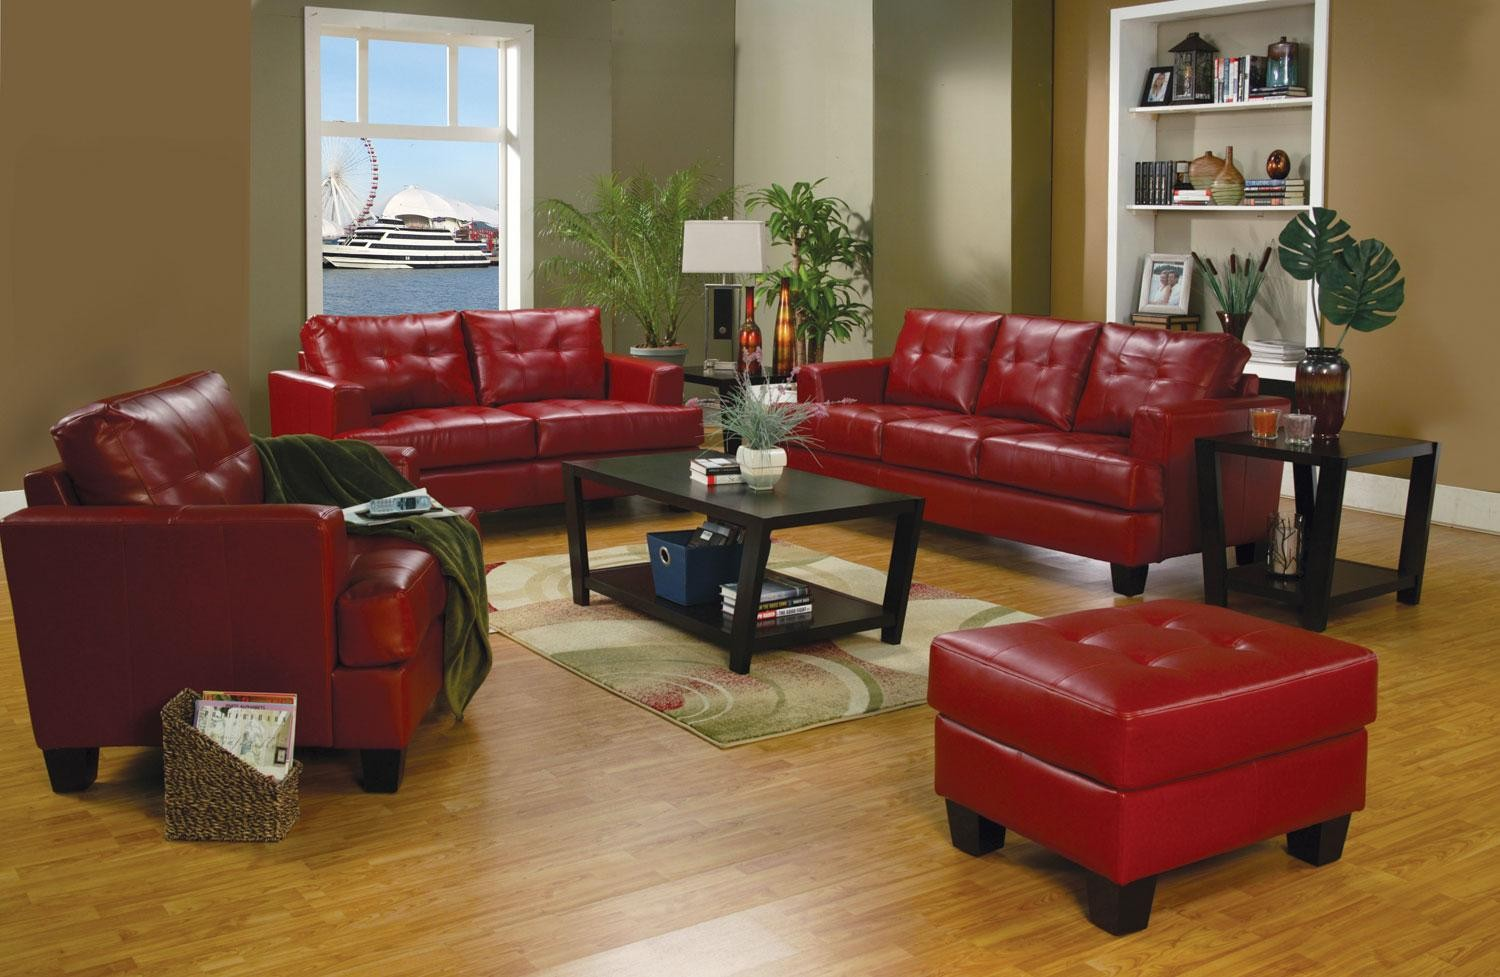 The leather sofa has long been a staple in thoughtfully curated homes, because, well, it does it all. Samuel Red Leather Living Room Set - 501831 from Coaster ...